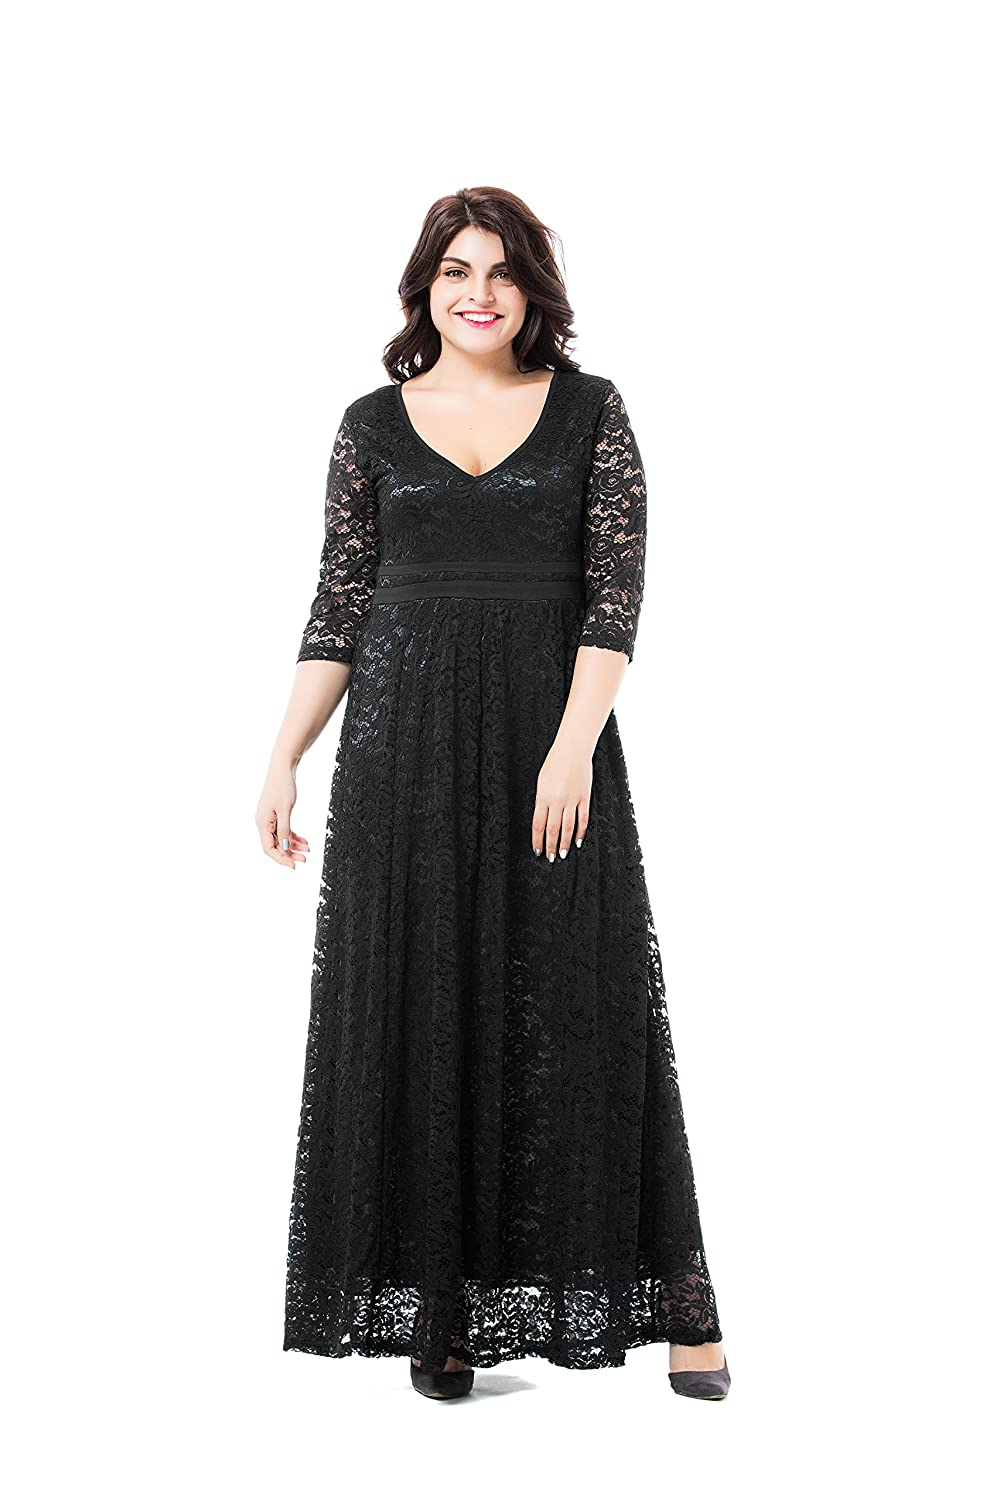 Old Fashioned Dresses | Old Dress Styles ESPRLIA Womens Plus Size Double V Neck 3/4 Sleeve Dress High Waist Maxi Wedding Dress $29.99 AT vintagedancer.com